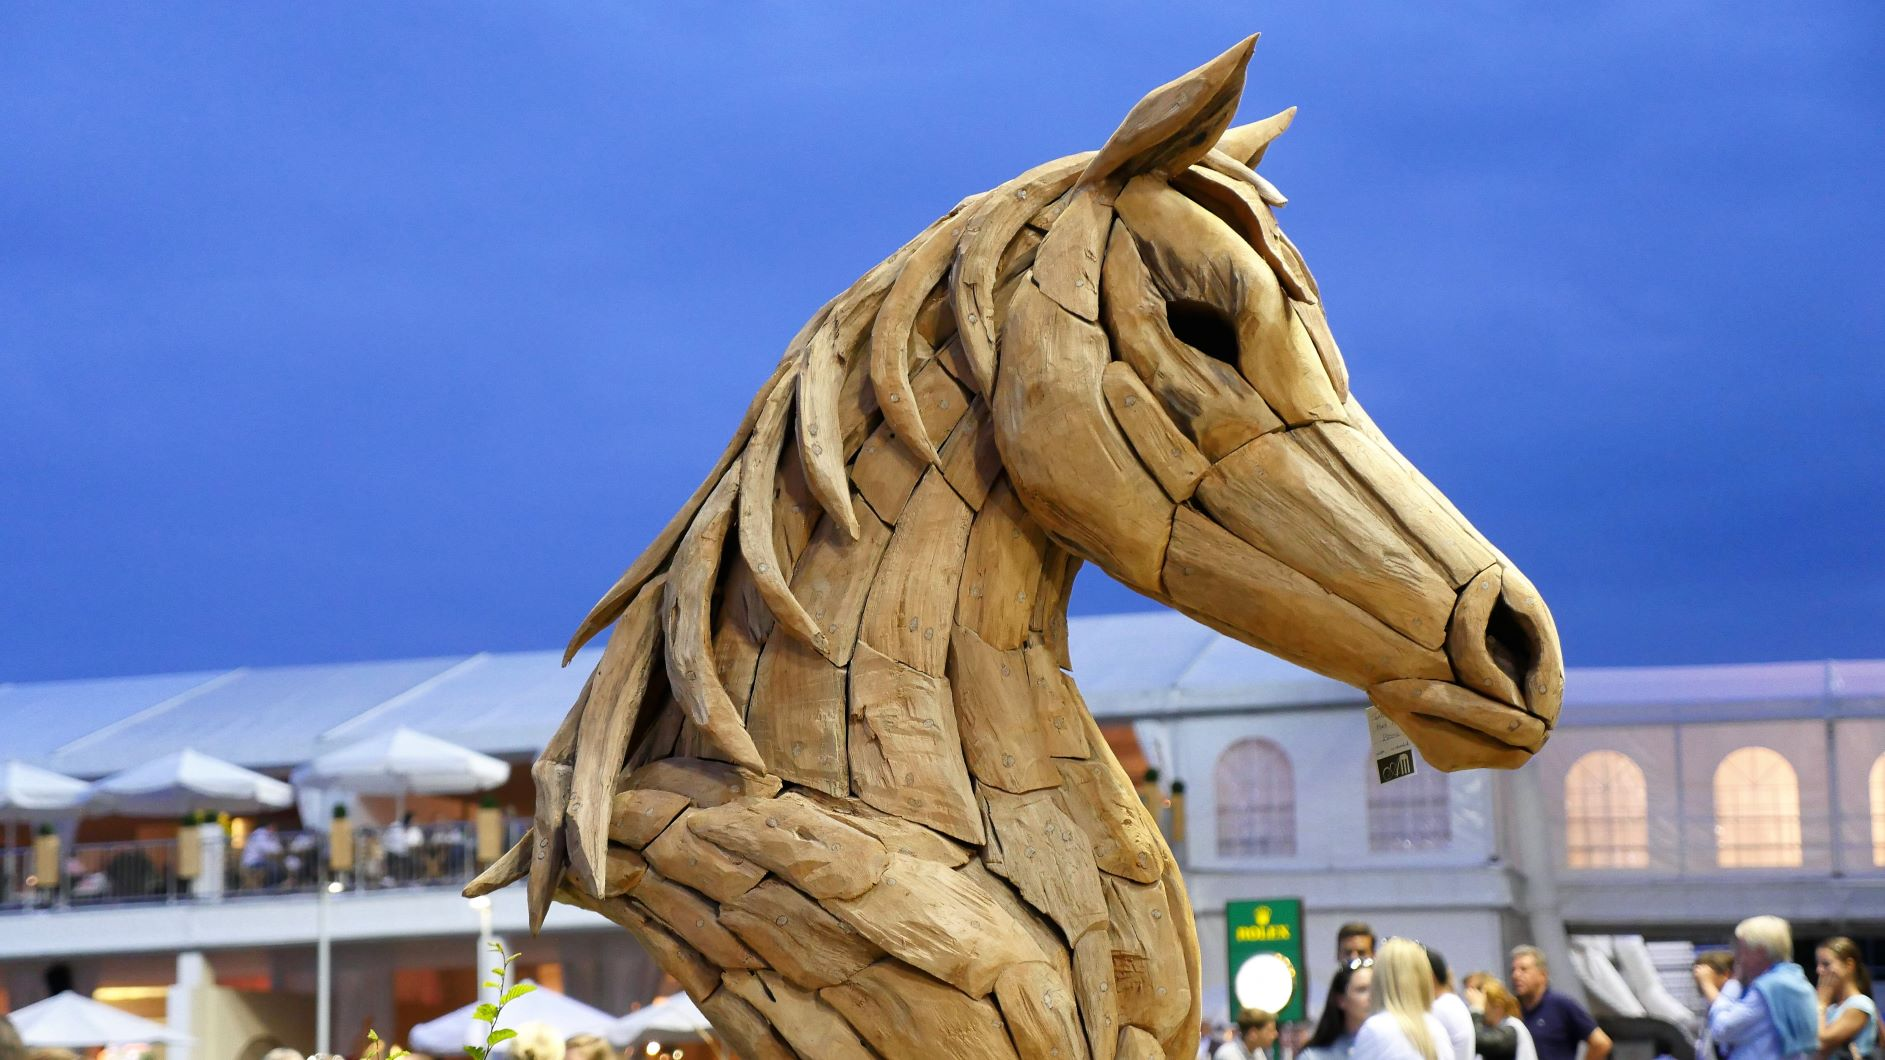 Imposing creations: horses made of wood